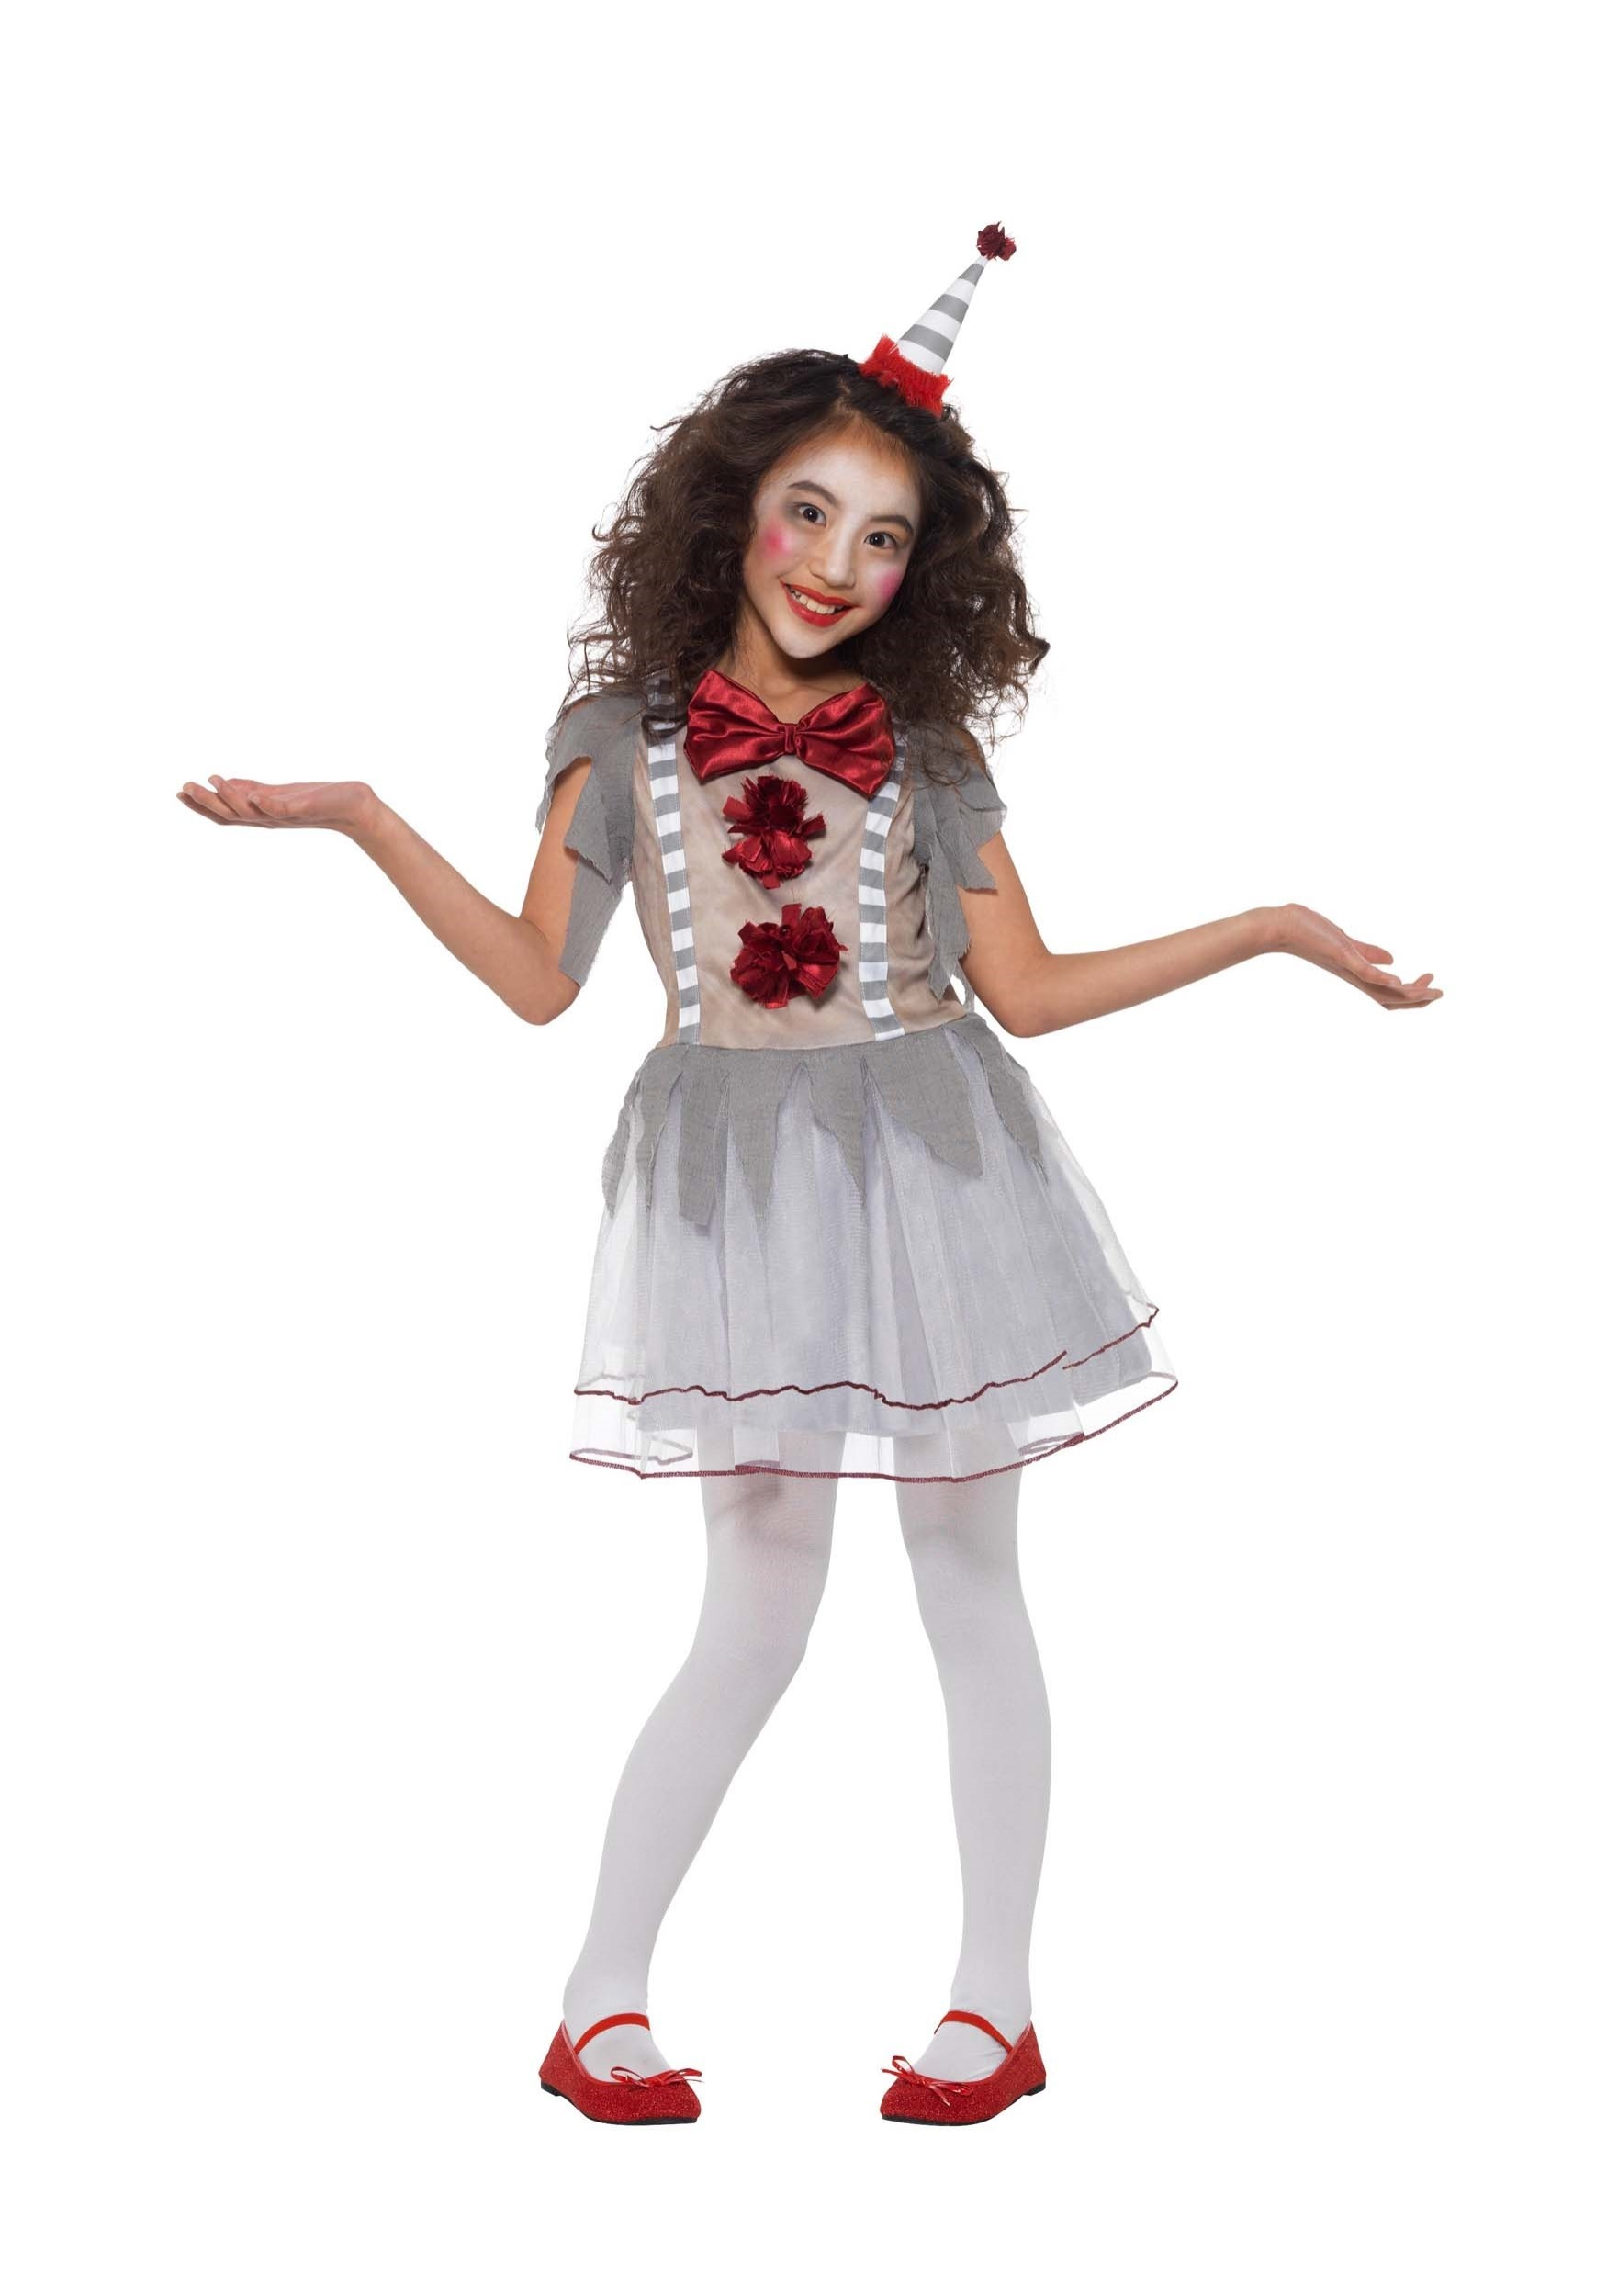 Vintage Clown Costume for Girls